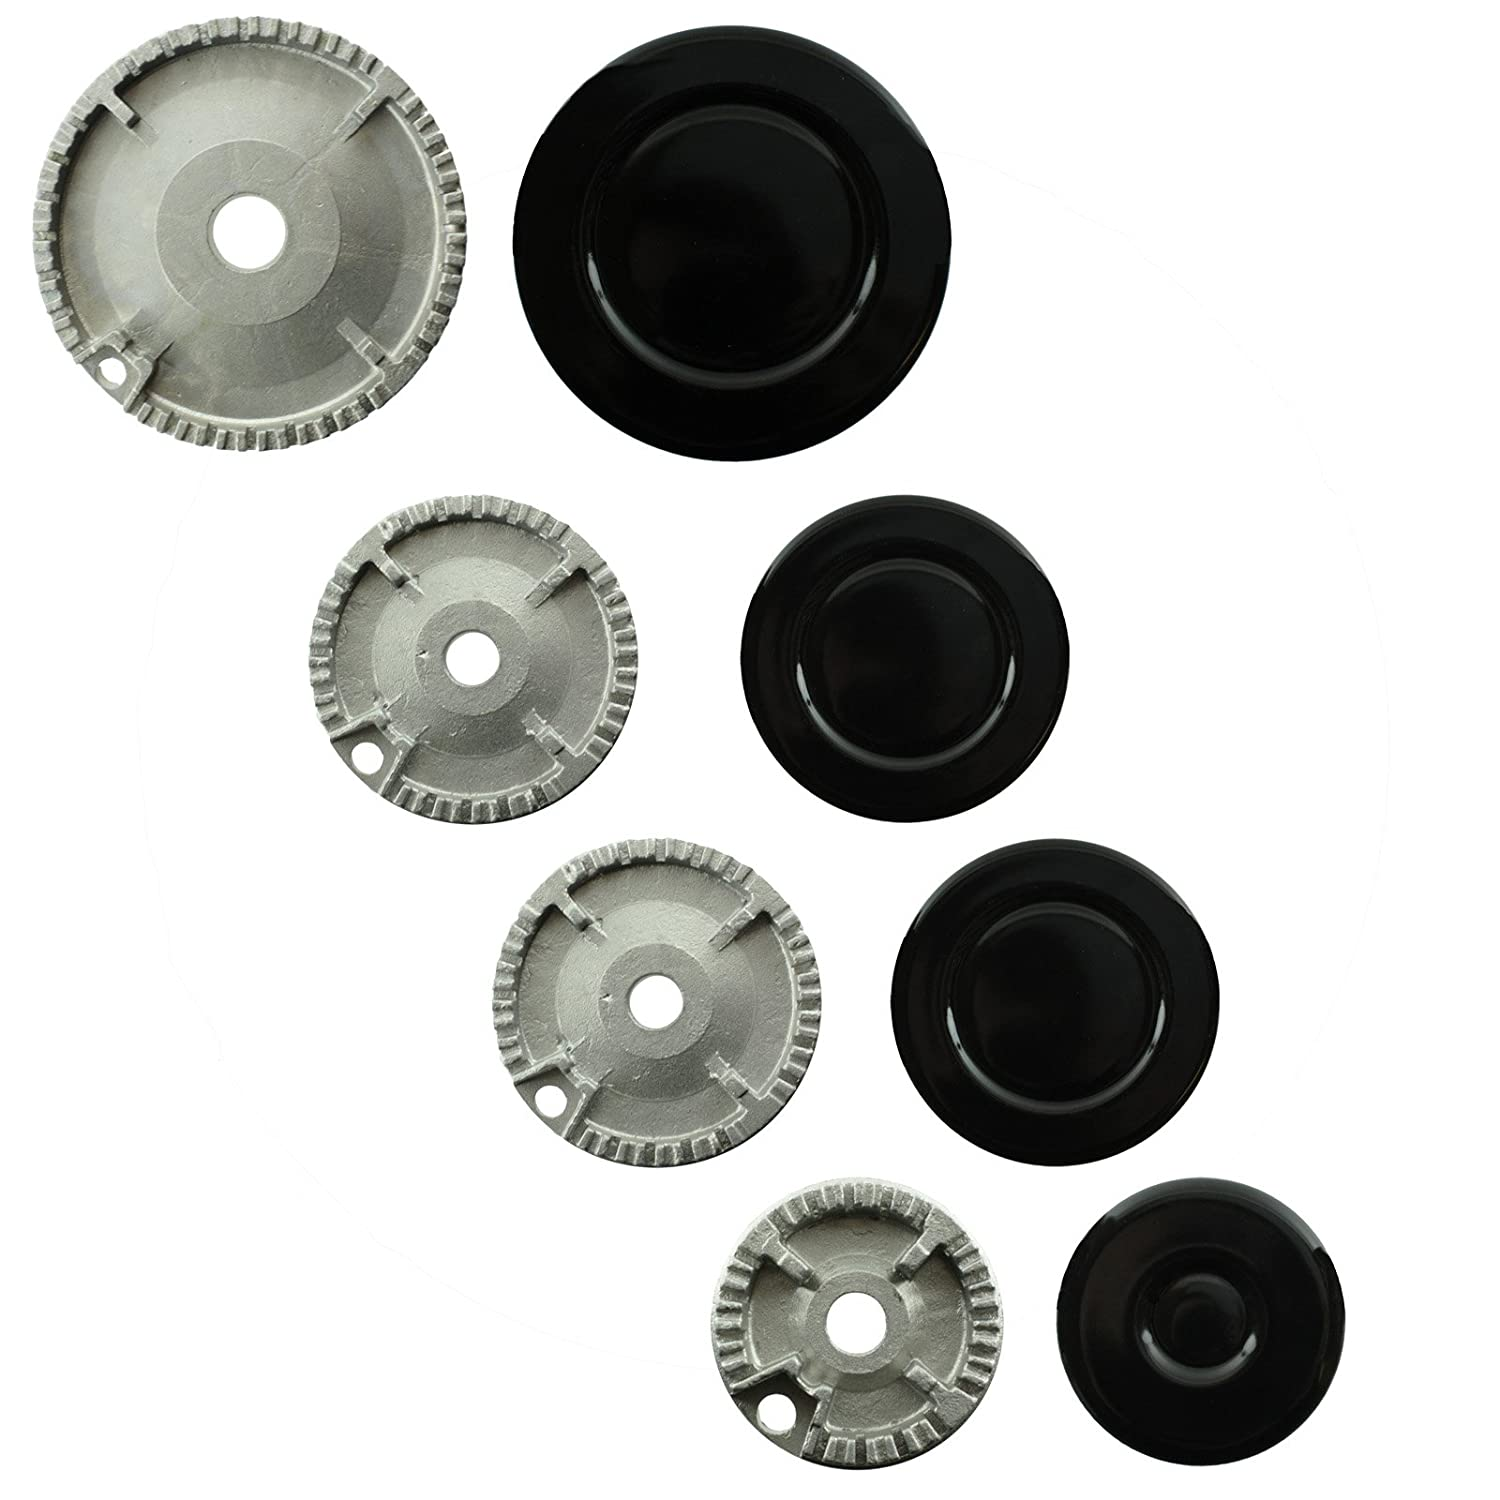 SPARES2GO (Non Universal) Oven Cooker Hob Gas Burner Crown & Flame Cap Kit for Neff (Small, 2 Medium & Large, 55mm - 100mm)